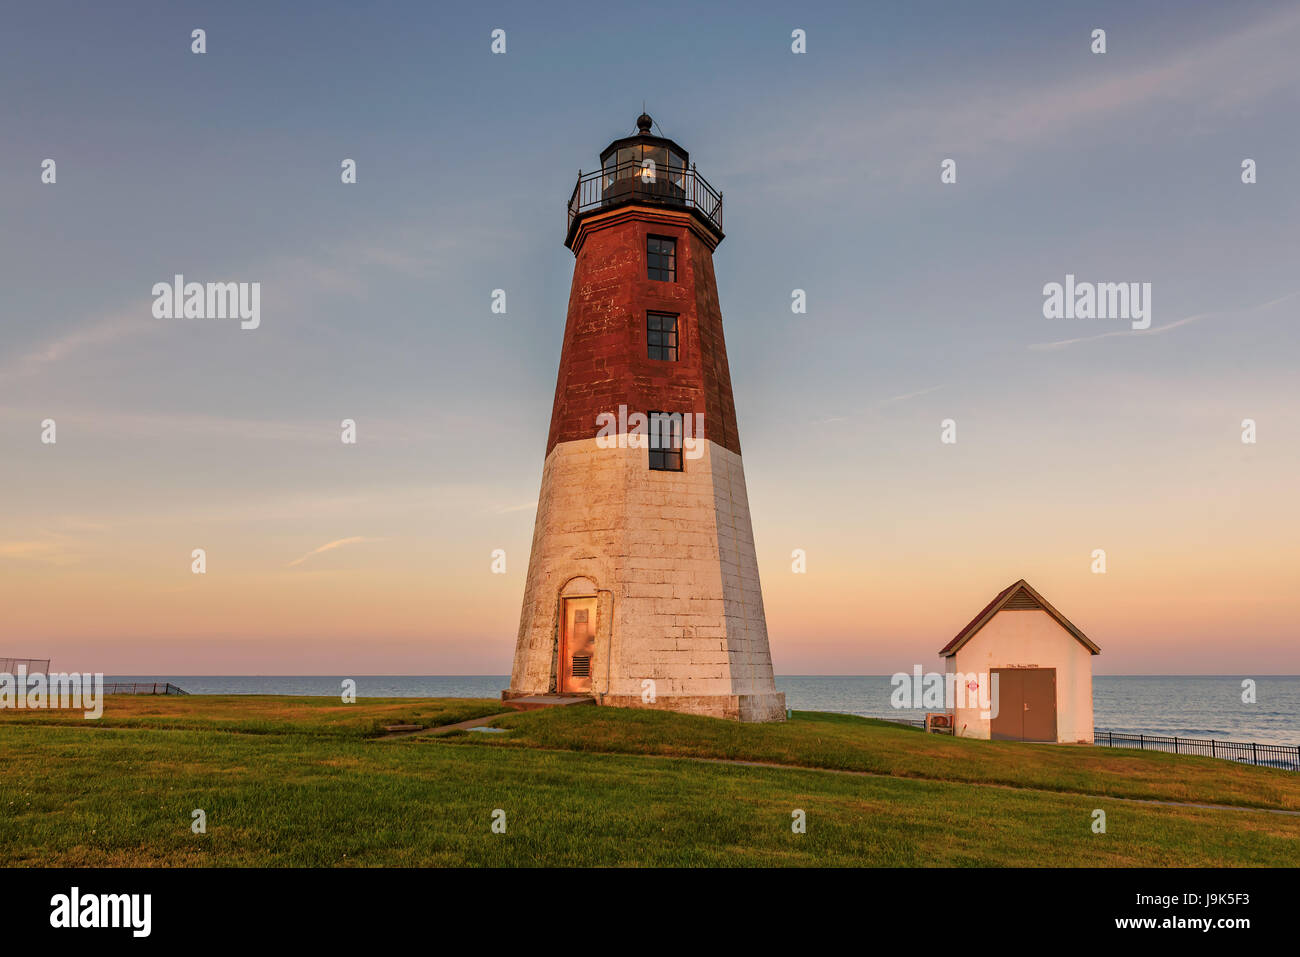 Famous Point Judith lighthouse in Rhode Island at sunset. - Stock Image